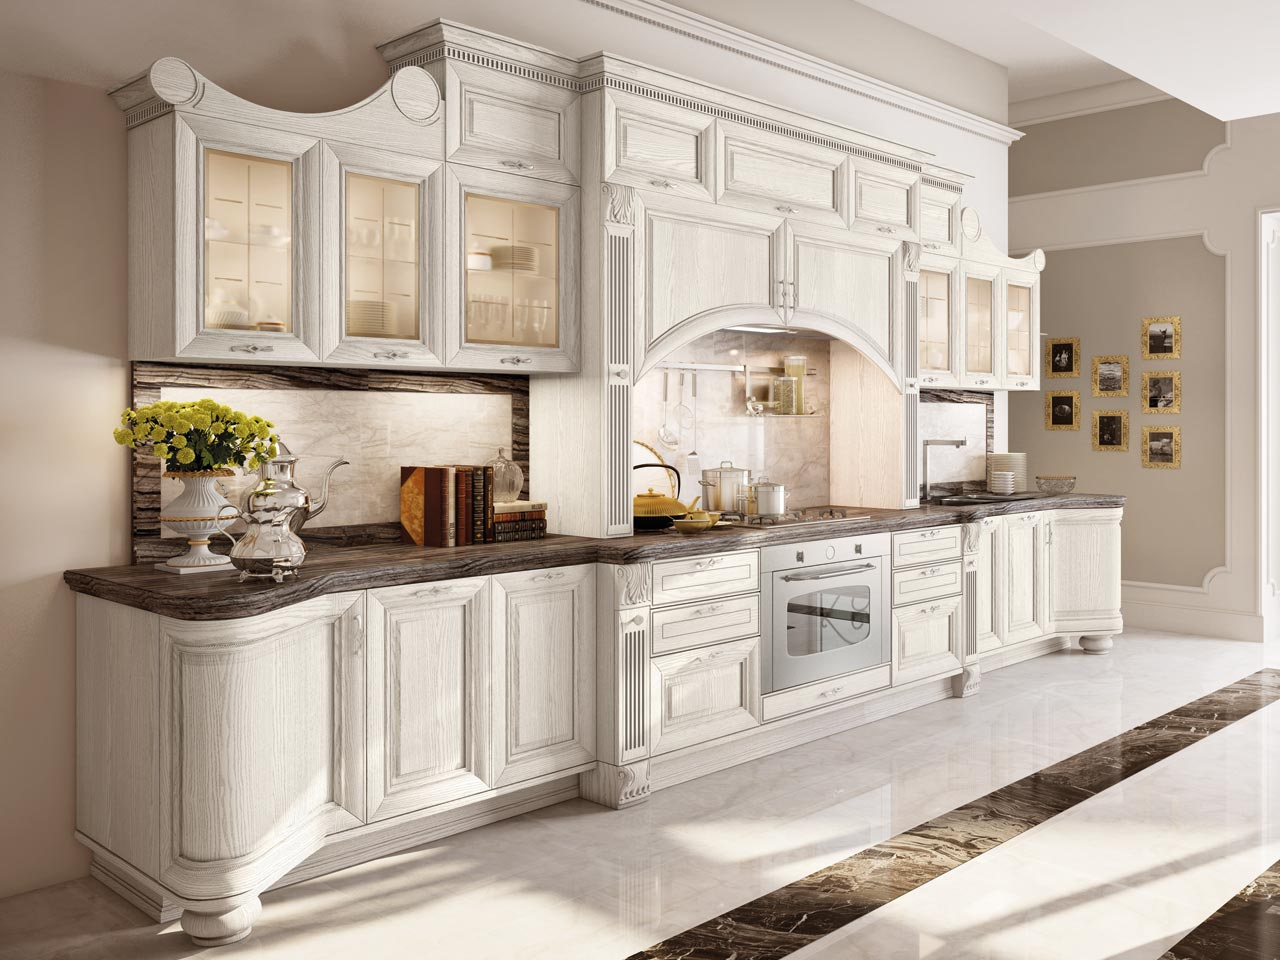 Awesome Cucina Lube Veronica Prezzo Images - Ideas & Design 2017 ...